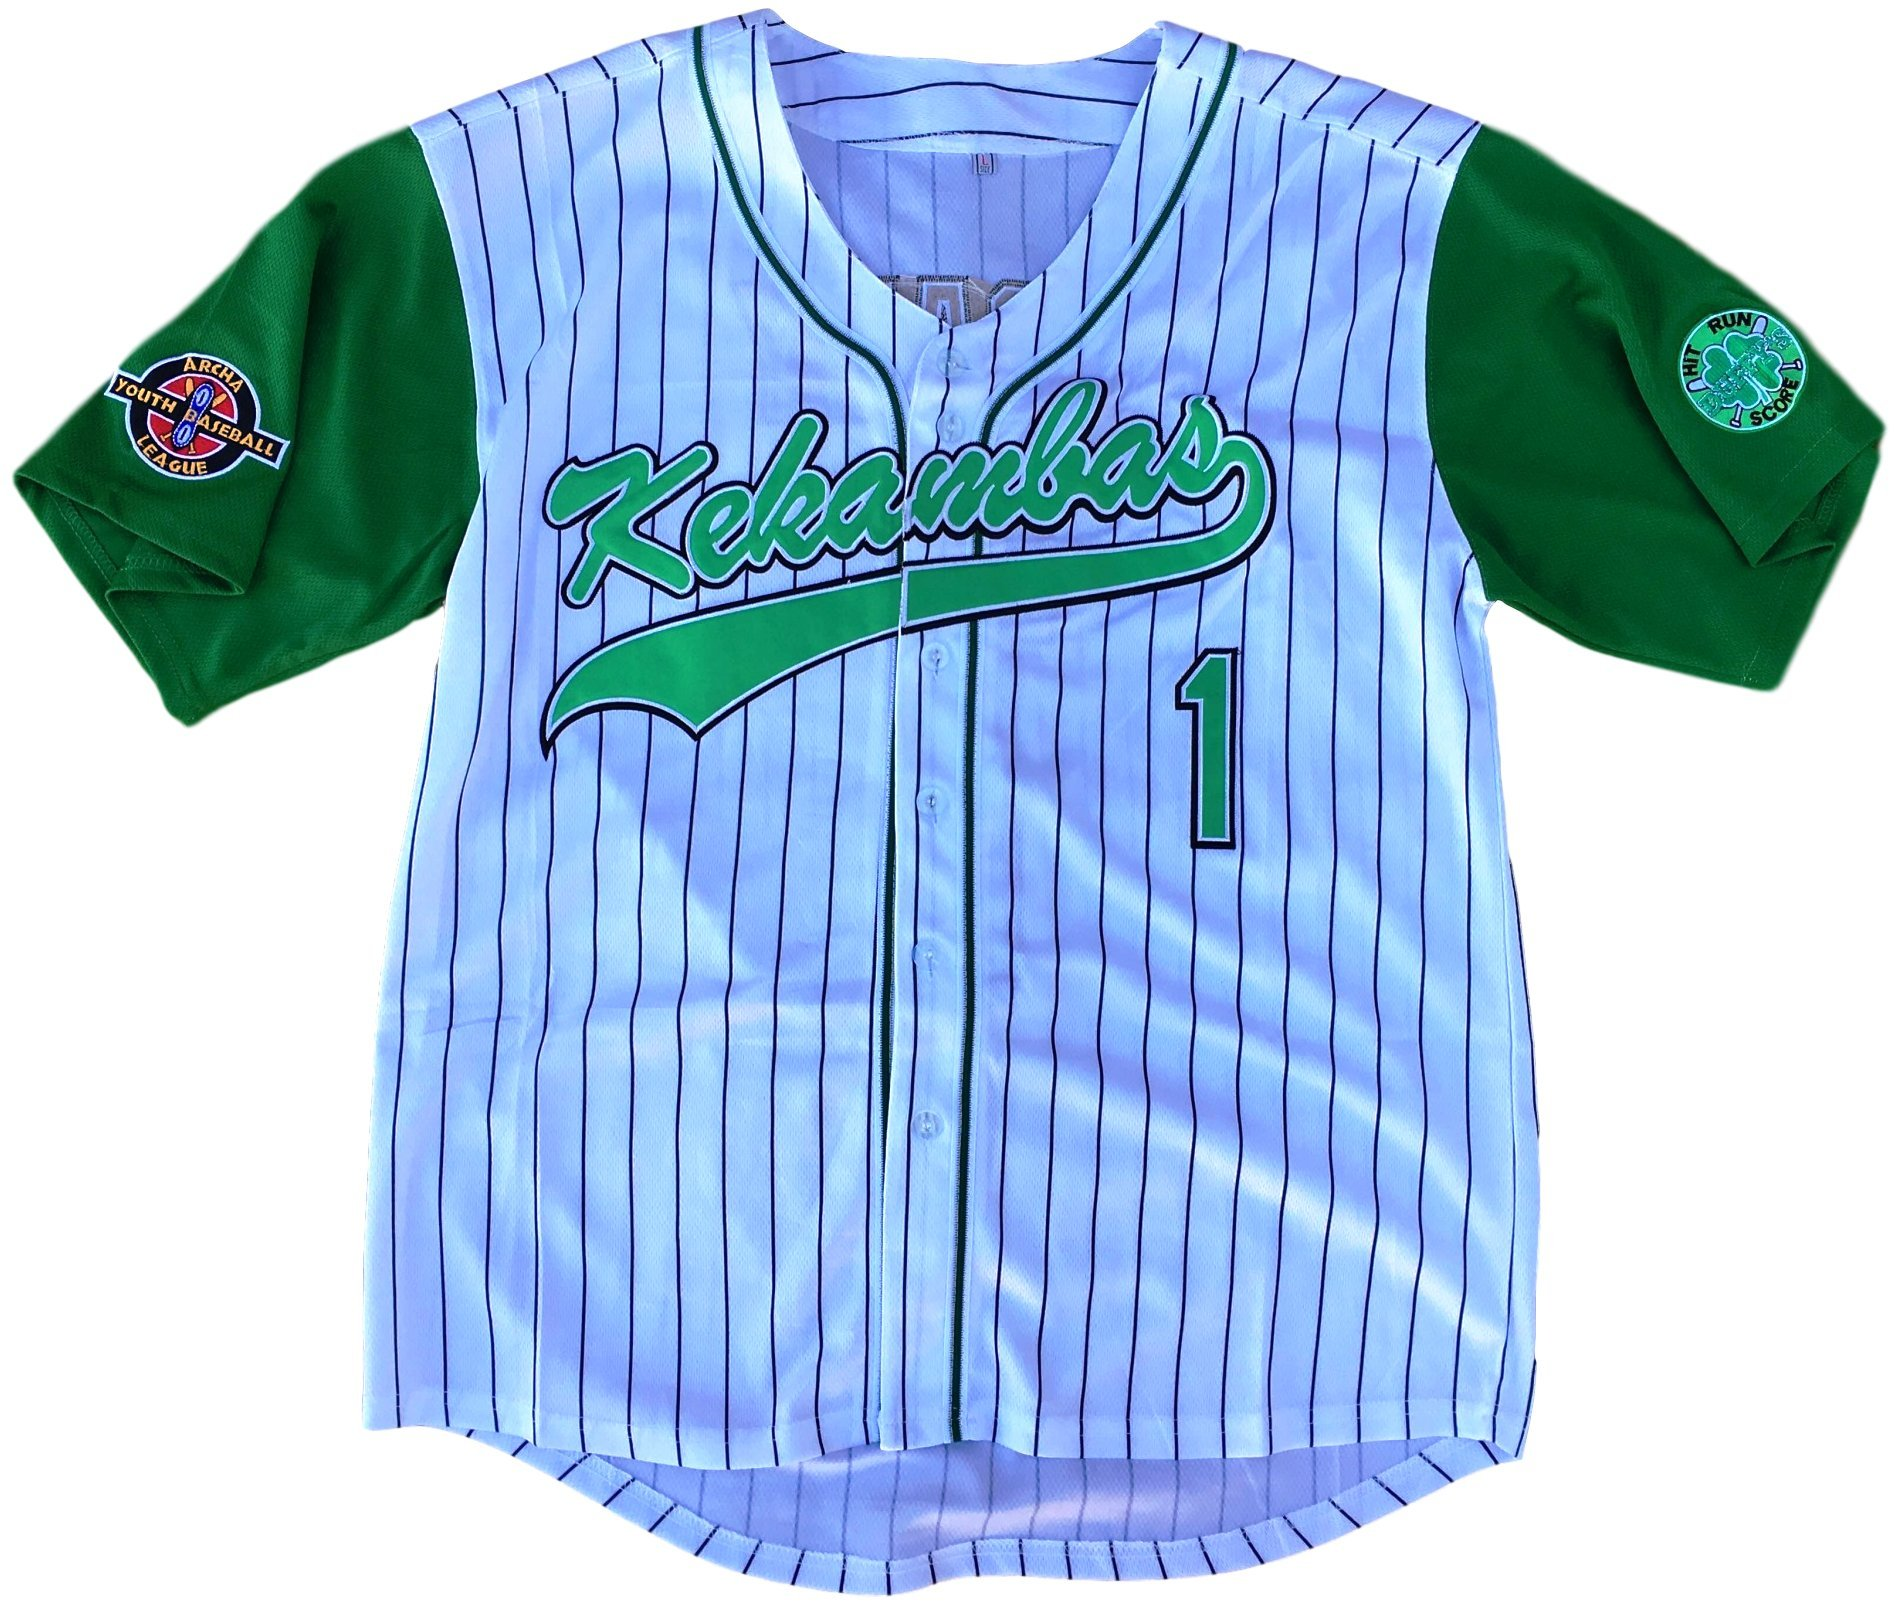 MVG ATHLETICS G-Baby Hardball Kekambas Movie Baseball Jersey #1 Embroidered S-XXL (XX-Large) by MVG ATHLETICS